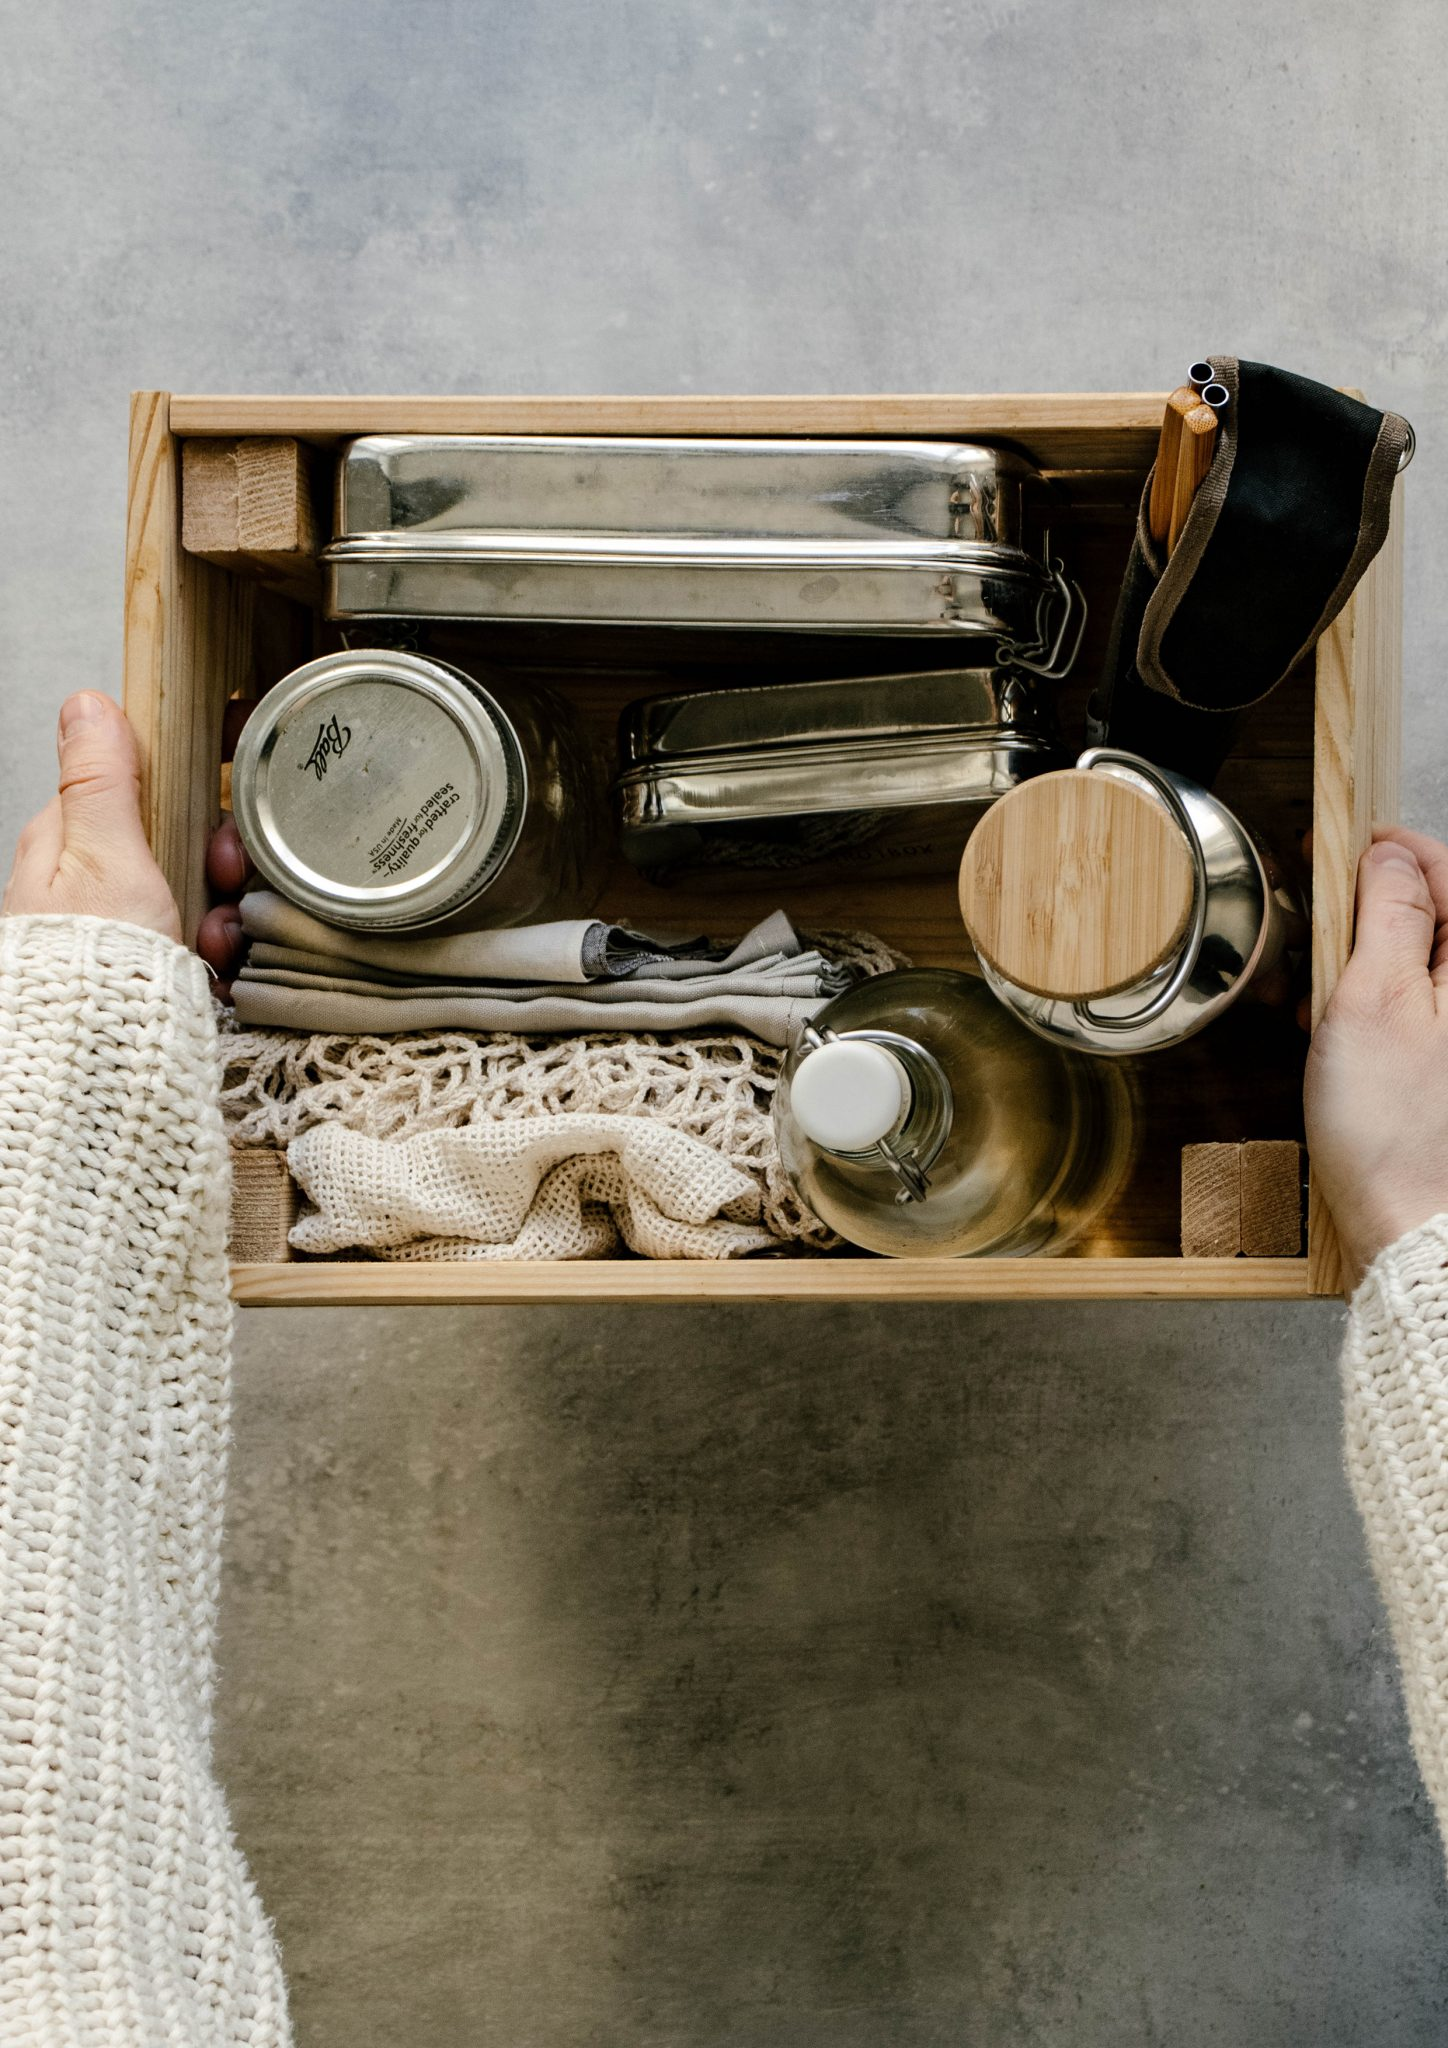 7 essentials for reducing waste on the go, zero-waste essentials, zero-waste tips for begginers, zero-waste tips, eco-friendly lifestyle